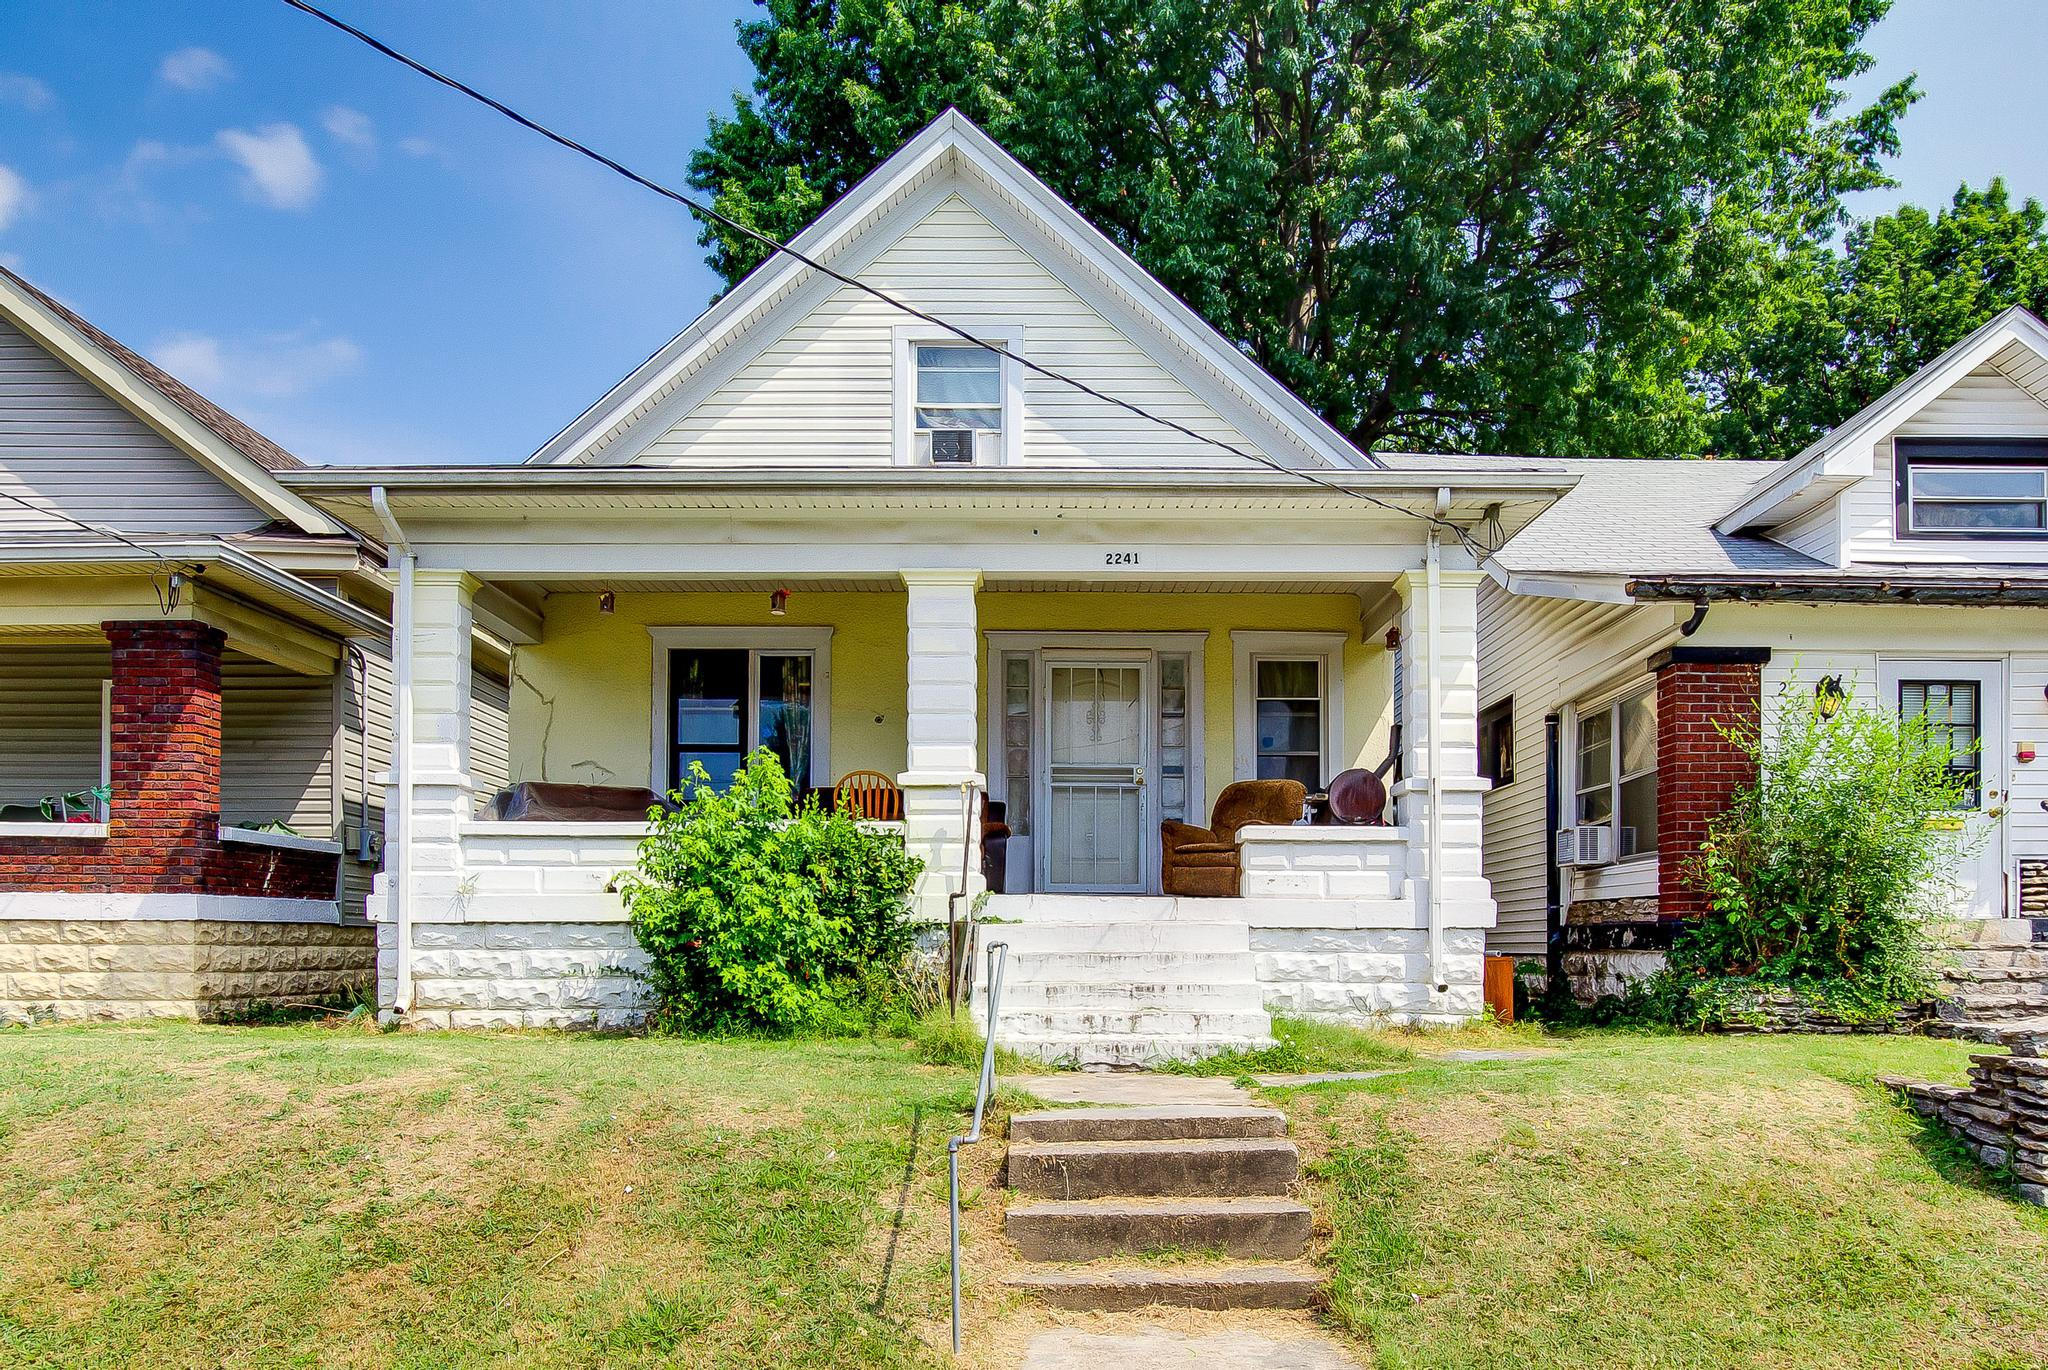 2241 Grand Ave, Louisville, KY